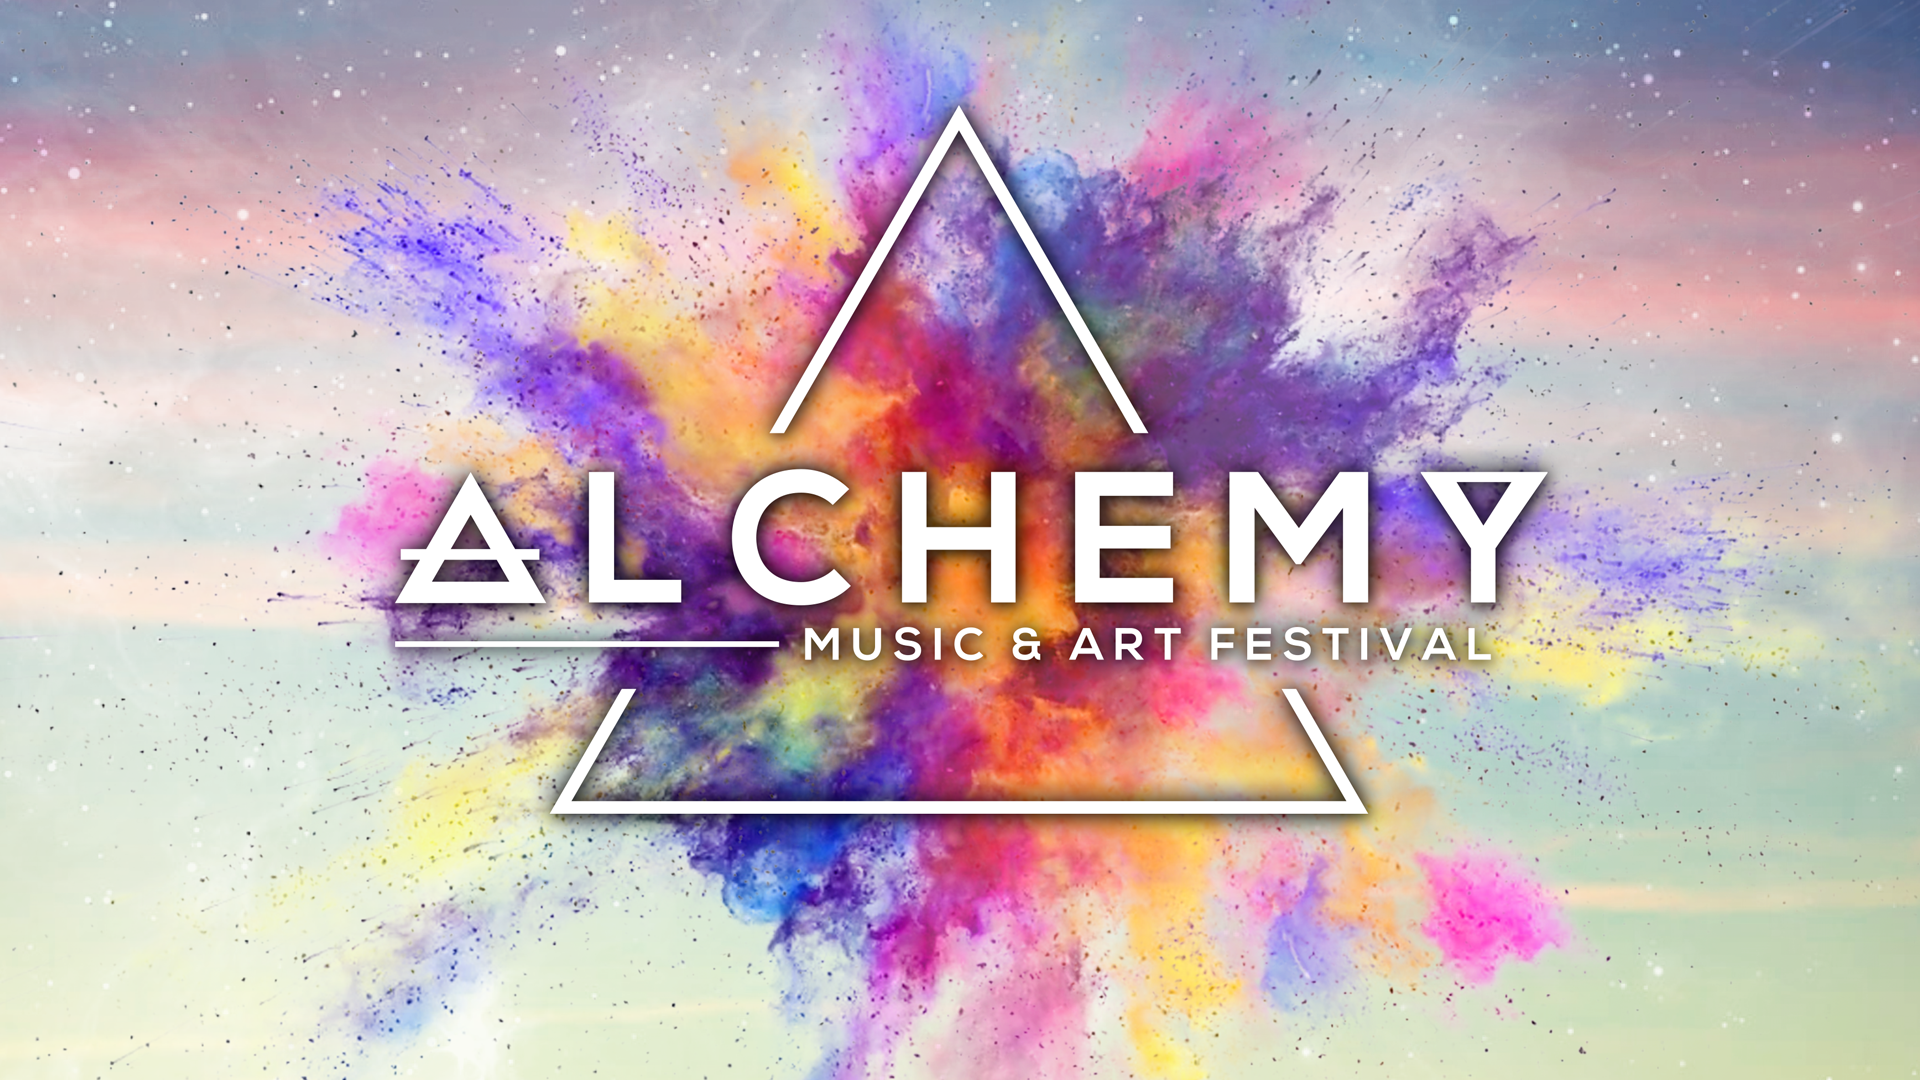 Alchemy Music & Art Festival